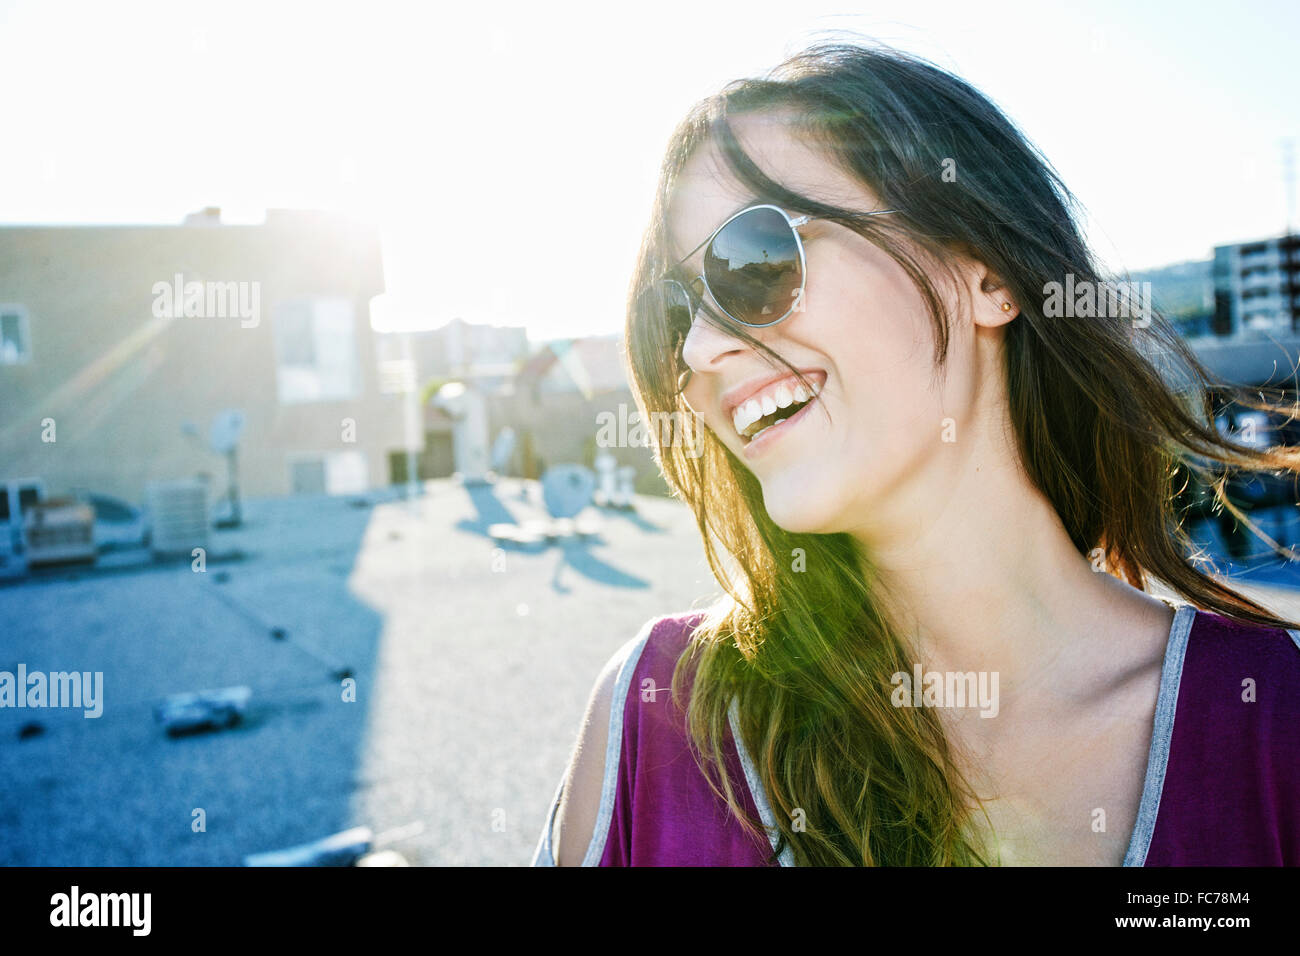 Mixed race woman smiling on urban rooftop Stock Photo